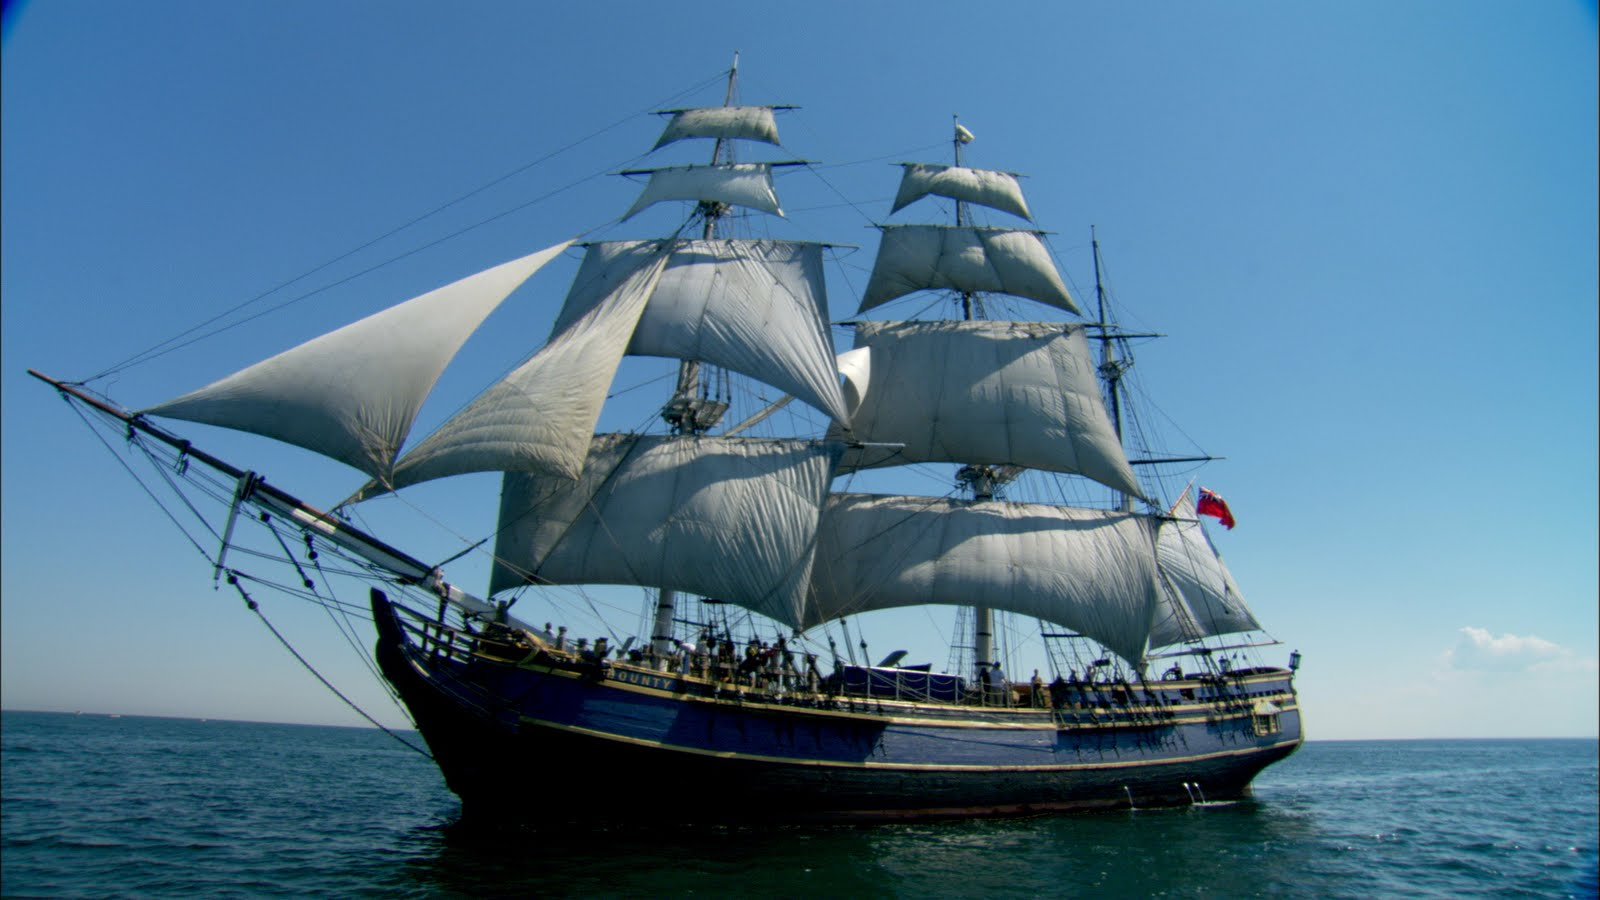 The Ship Watcher - Your 1000 Islands Shipping Blog & News Source: Tall ...